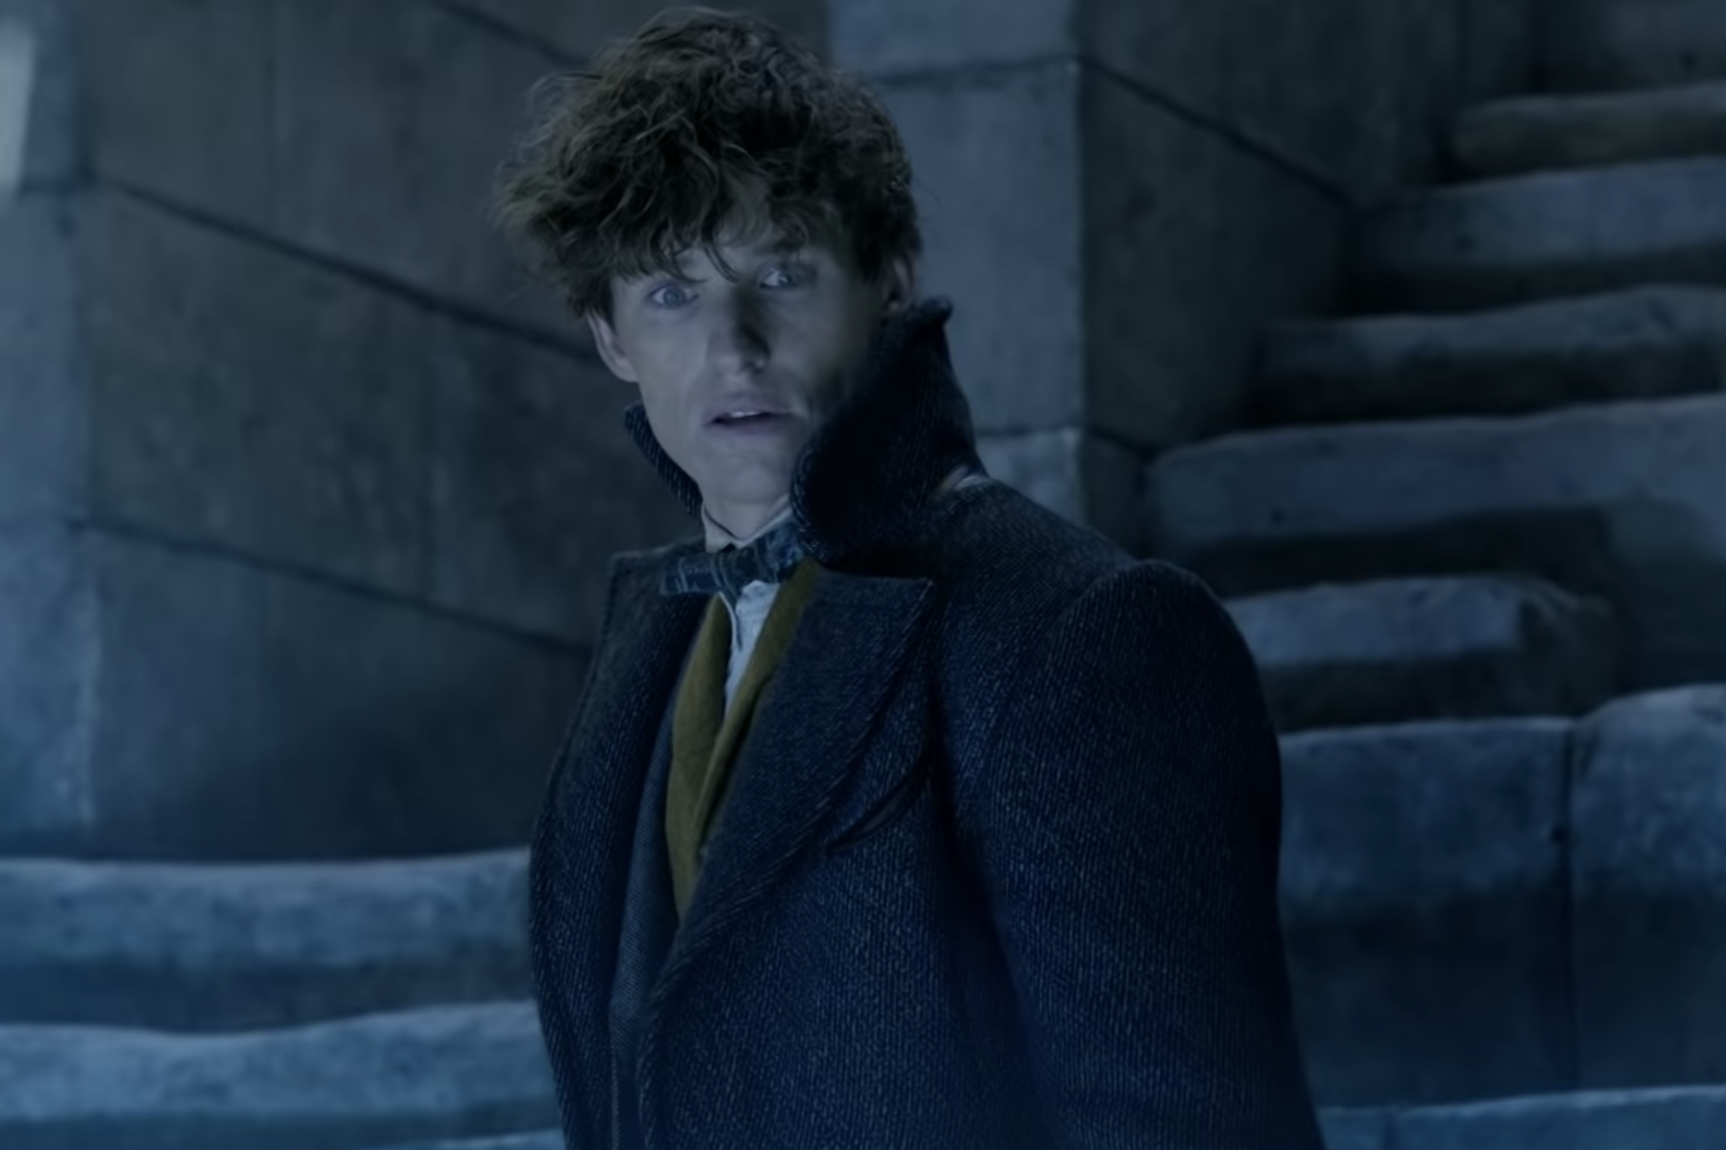 Fantastic Beasts 3: Sequel starring Eddie Redmayne and Johnny Depp will be set in Brazil